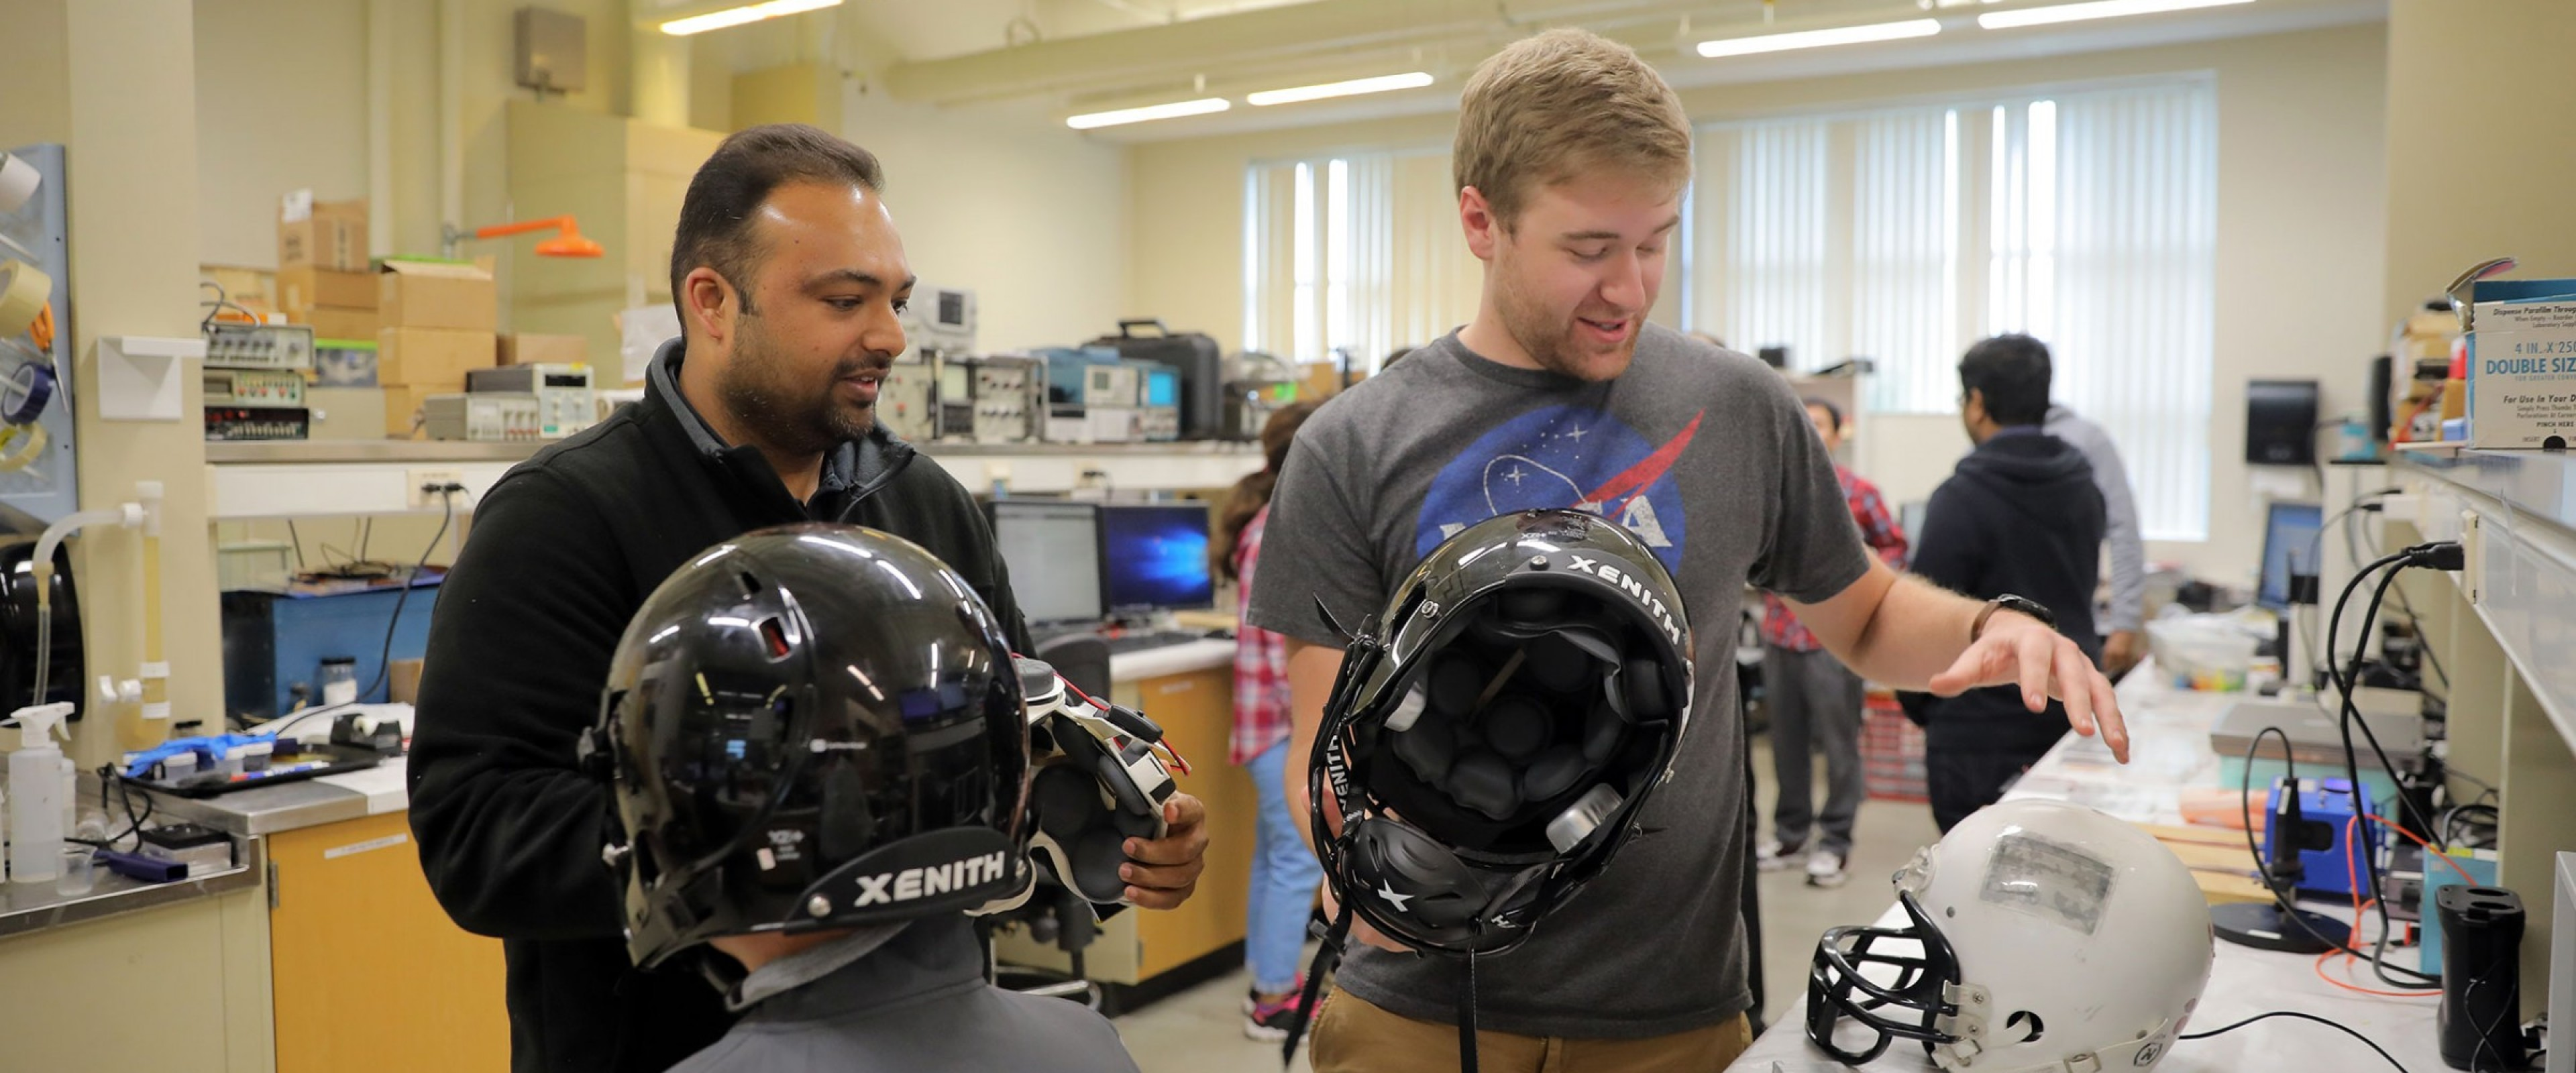 A WMU student and professor work together discussing the safety and design of the helmets they are holding